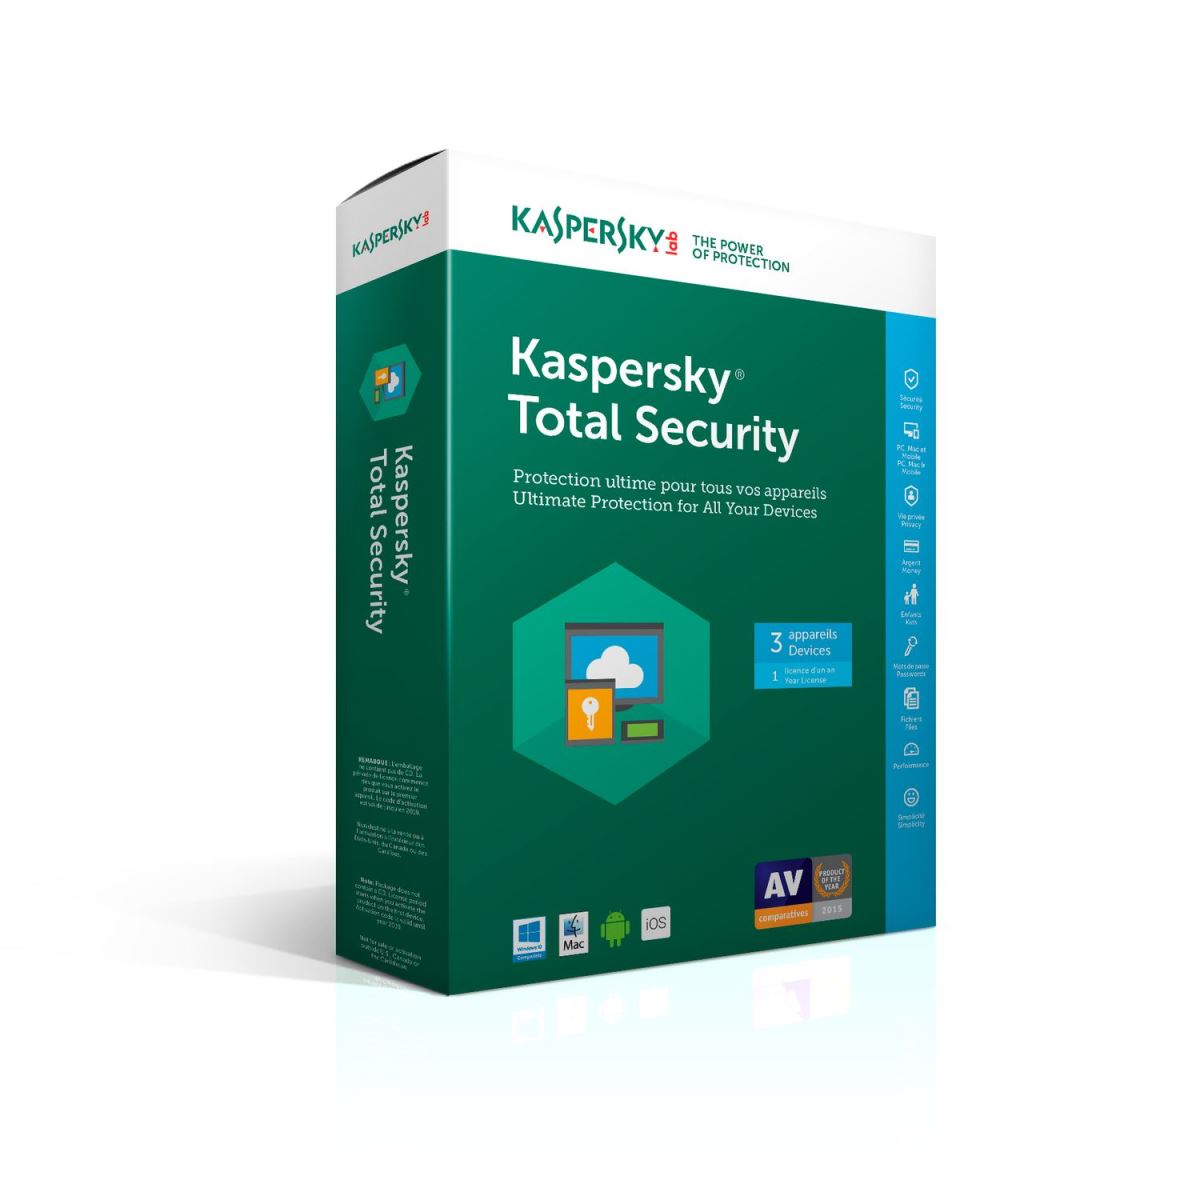 Mua key kaspersky internet security 2017